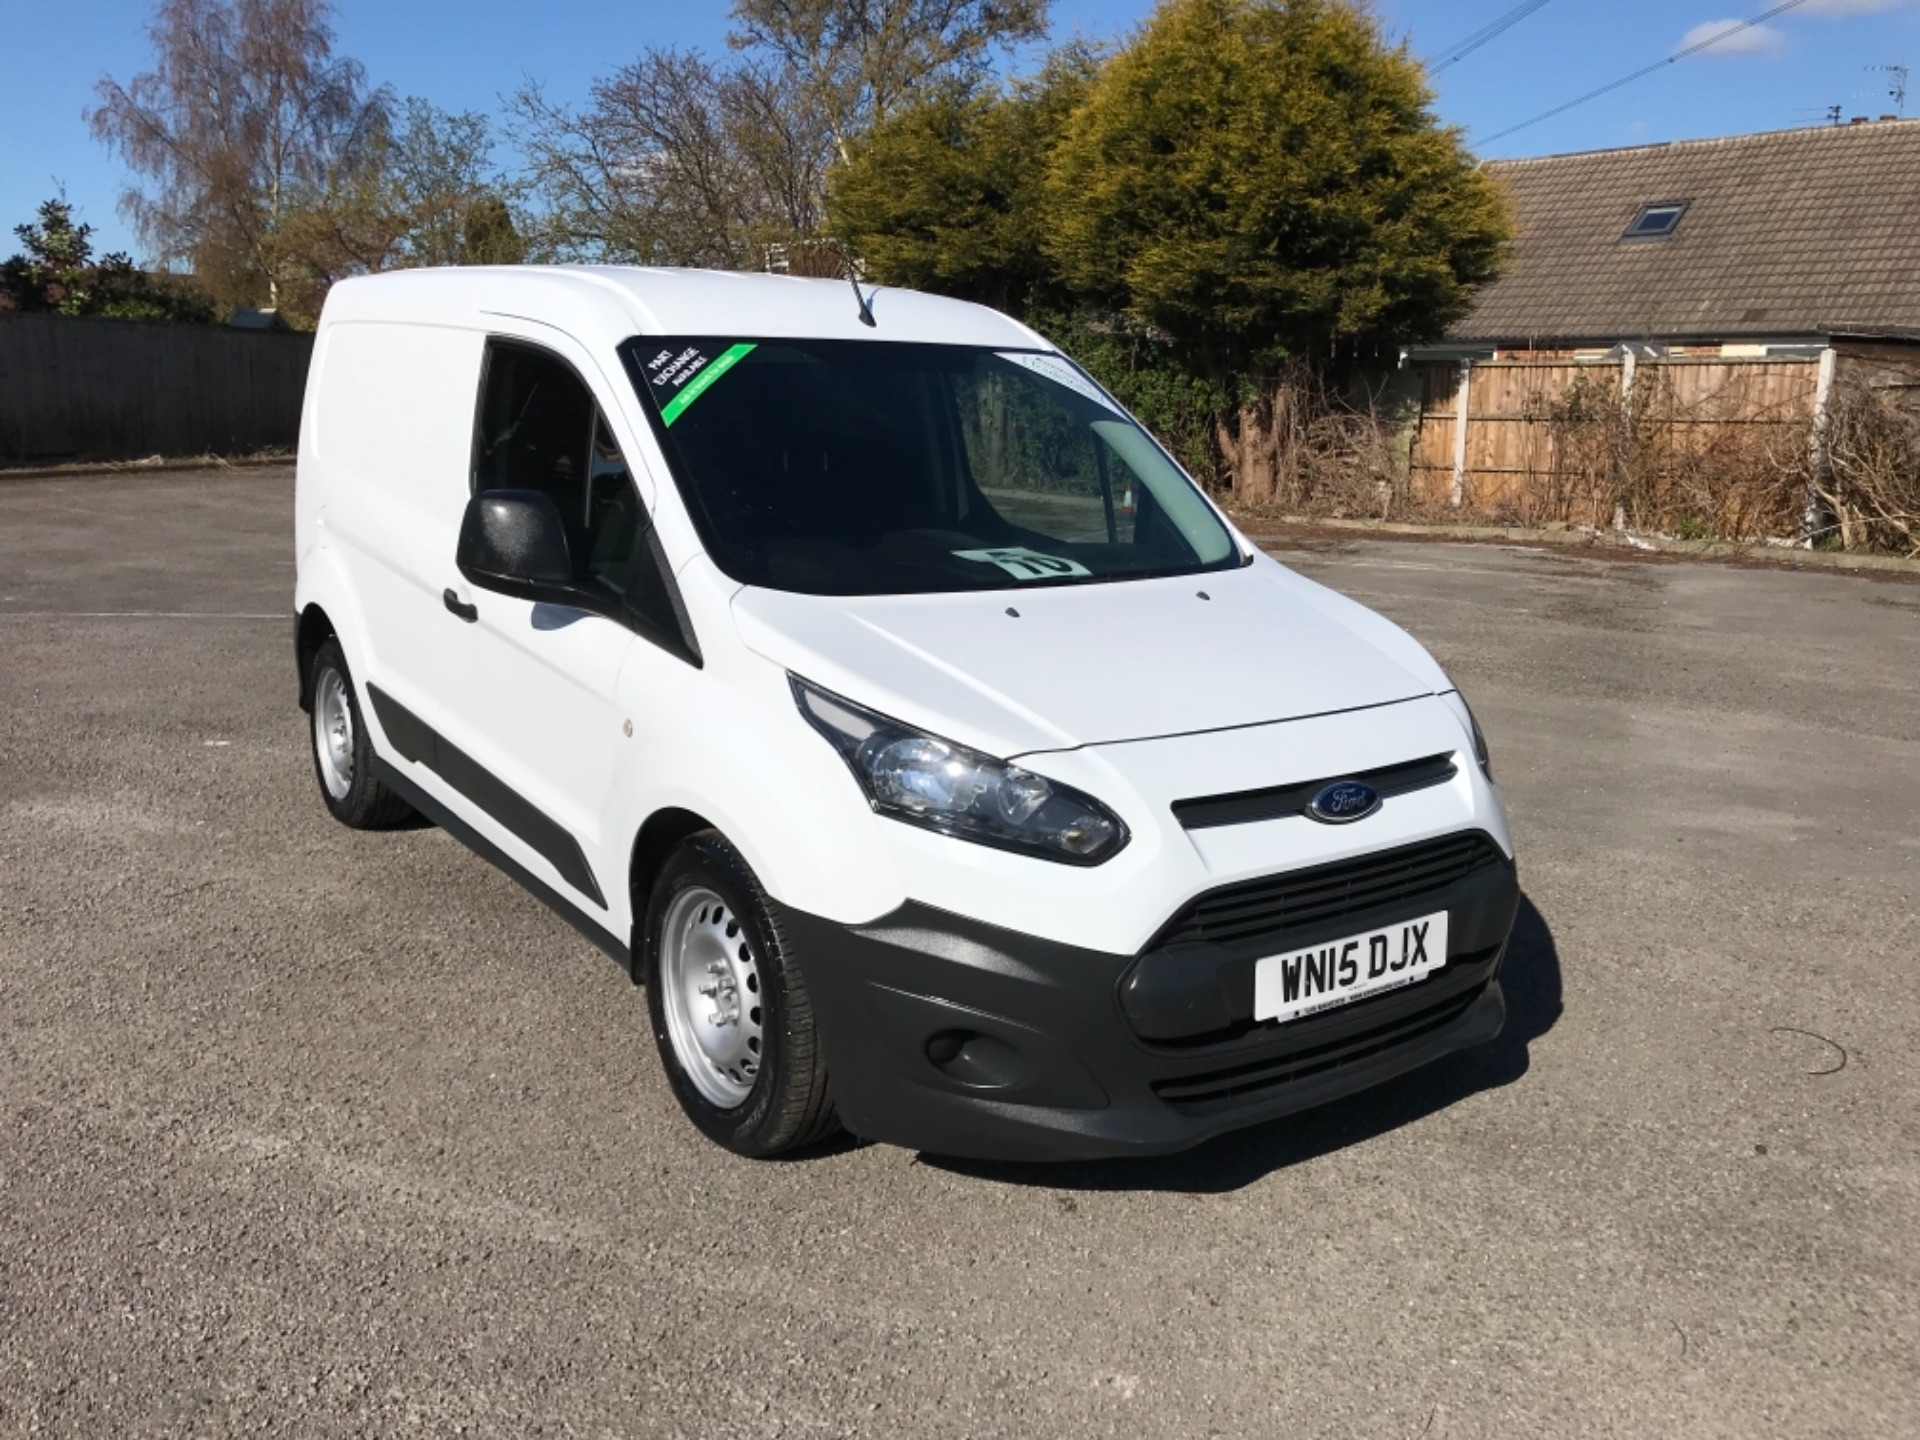 2015 Ford Transit Connect 1.6 Tdci 75Ps Van EURO 5 (WN15DJX) Thumbnail 1